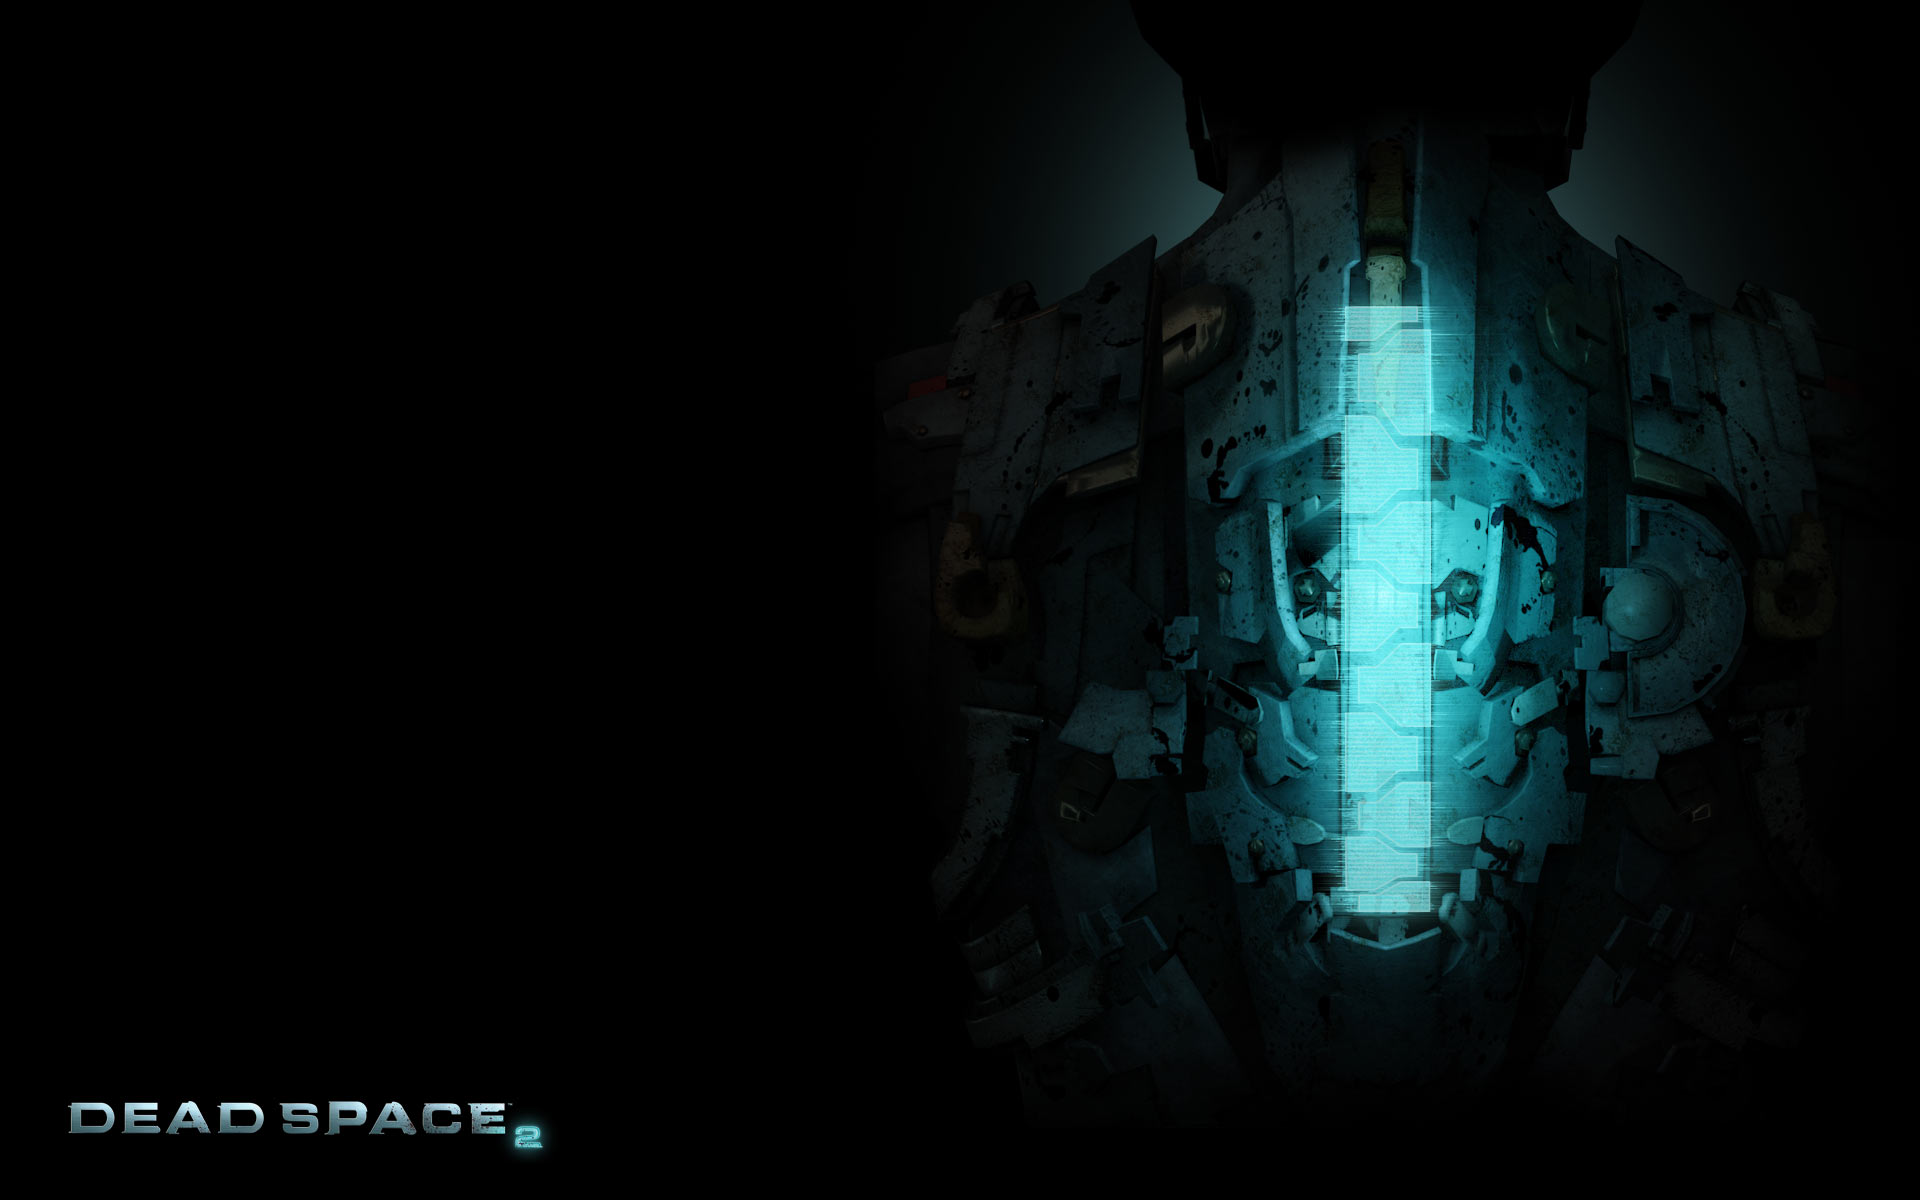 Dead Space Wallpapers - HD Desktop Wallpapers